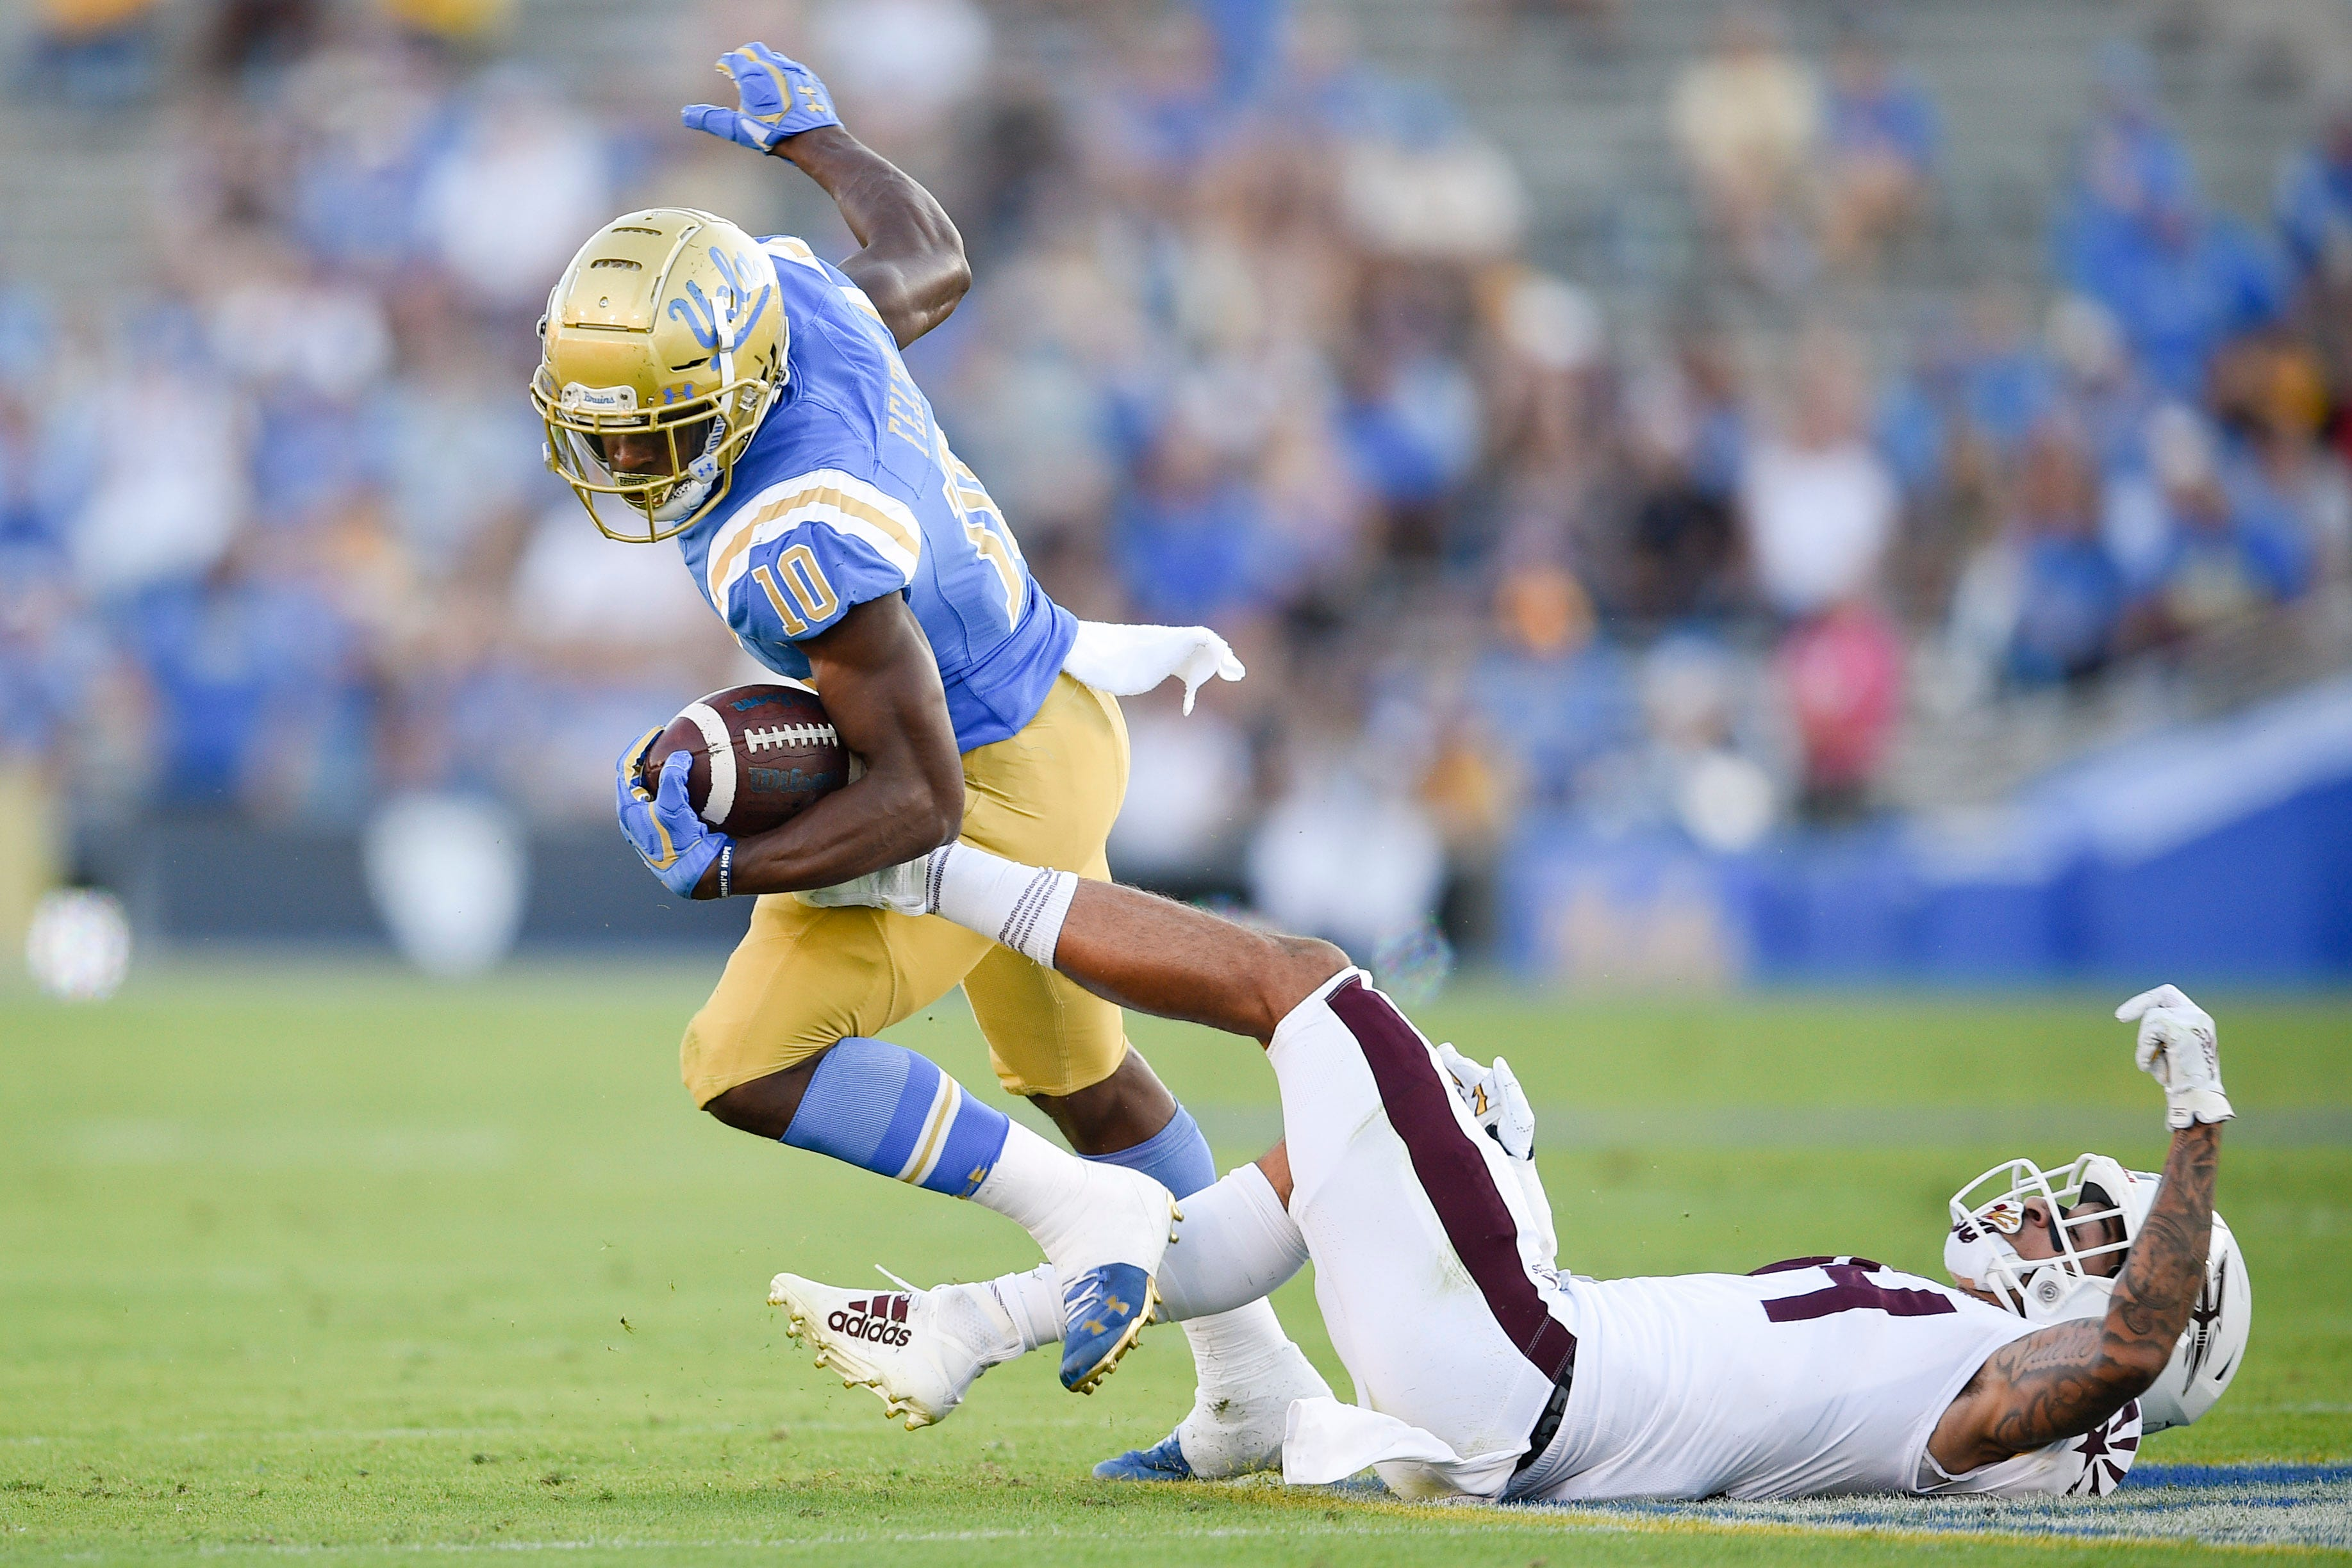 ASU freshman safety Kejuan Markham to start ahead of Crosswell against Oregon State - AZCentral